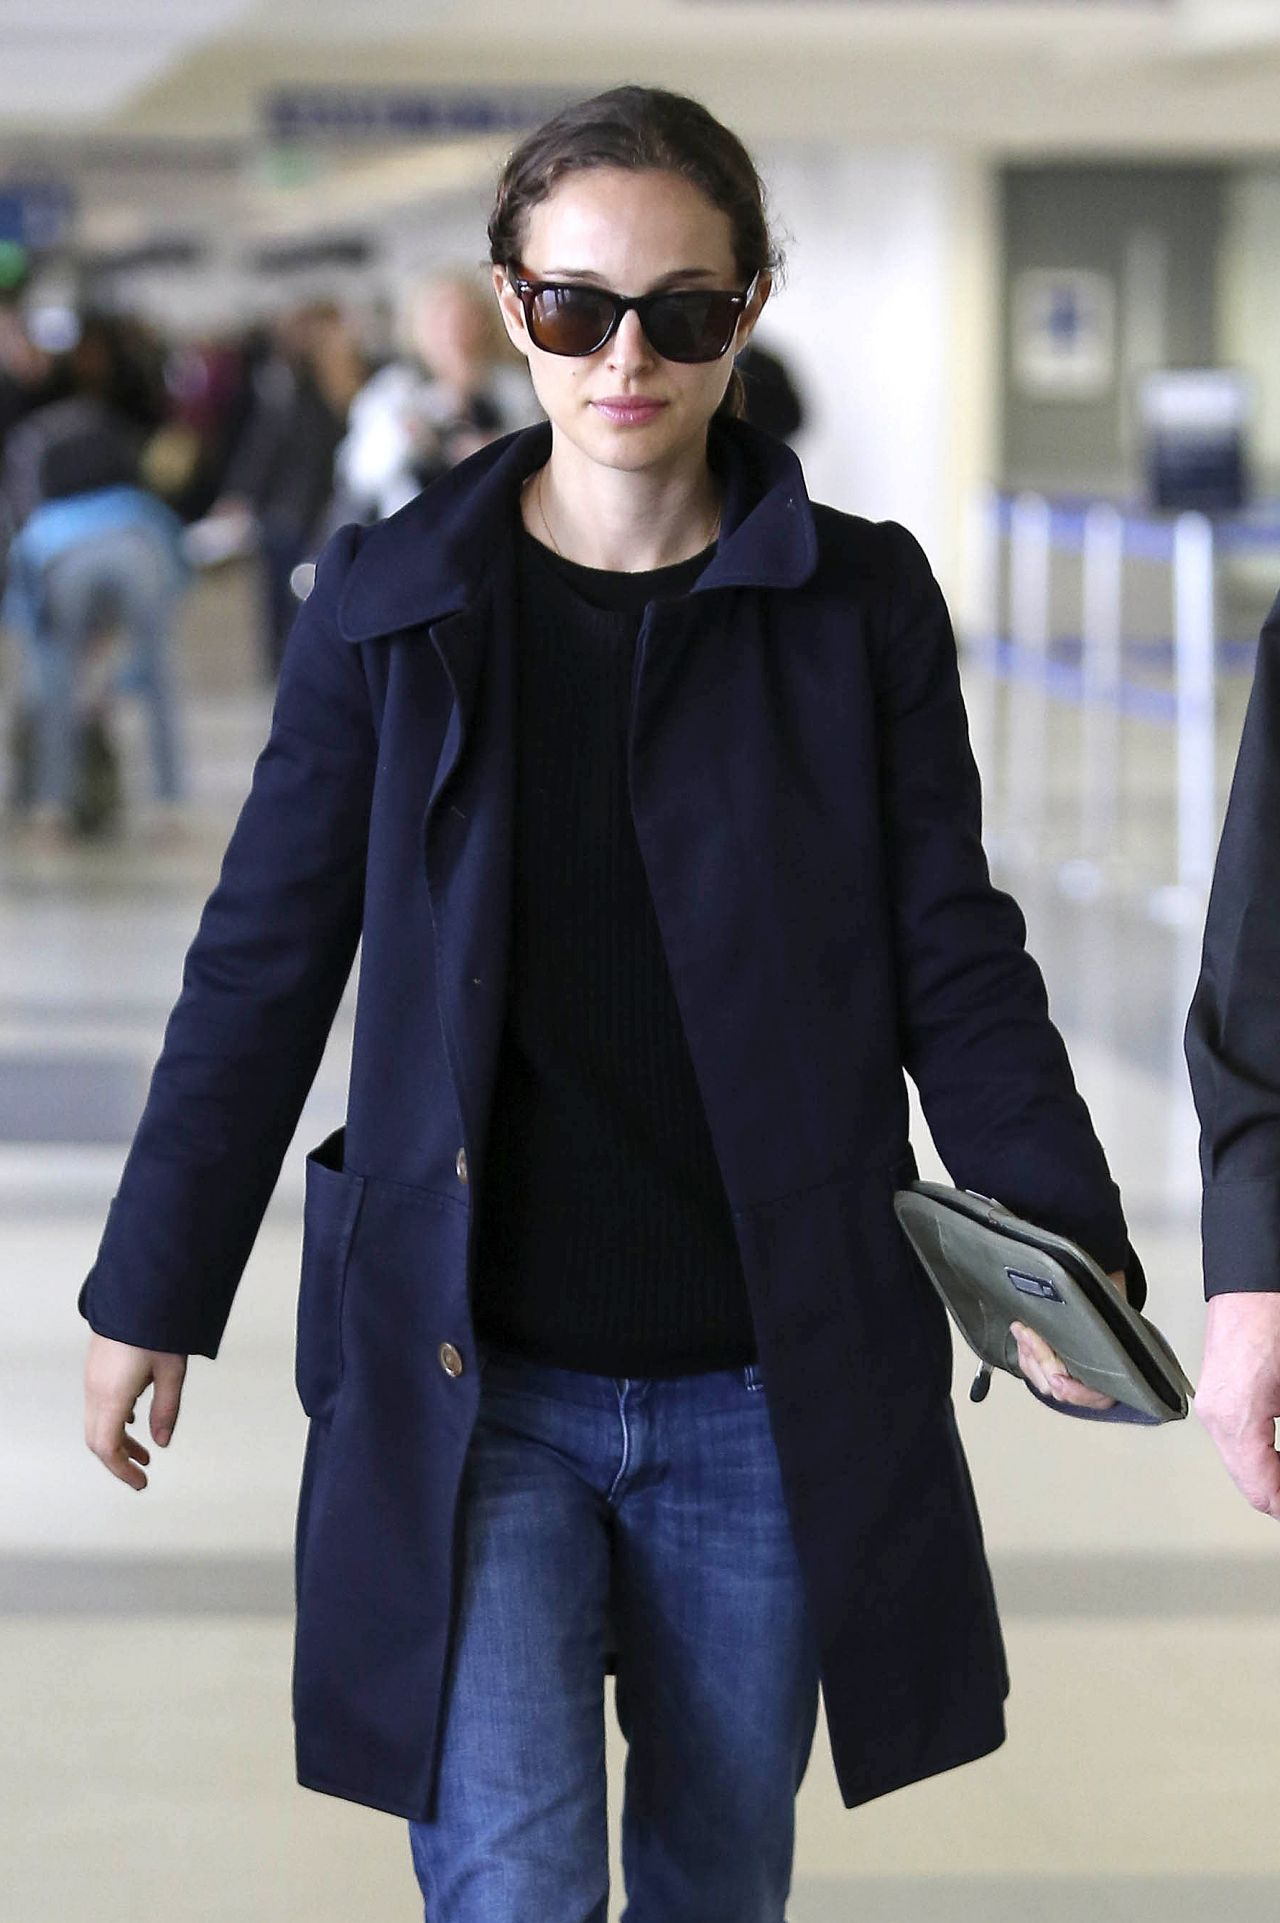 Natalie Portman Street Style - at LAX Airport - November 2013